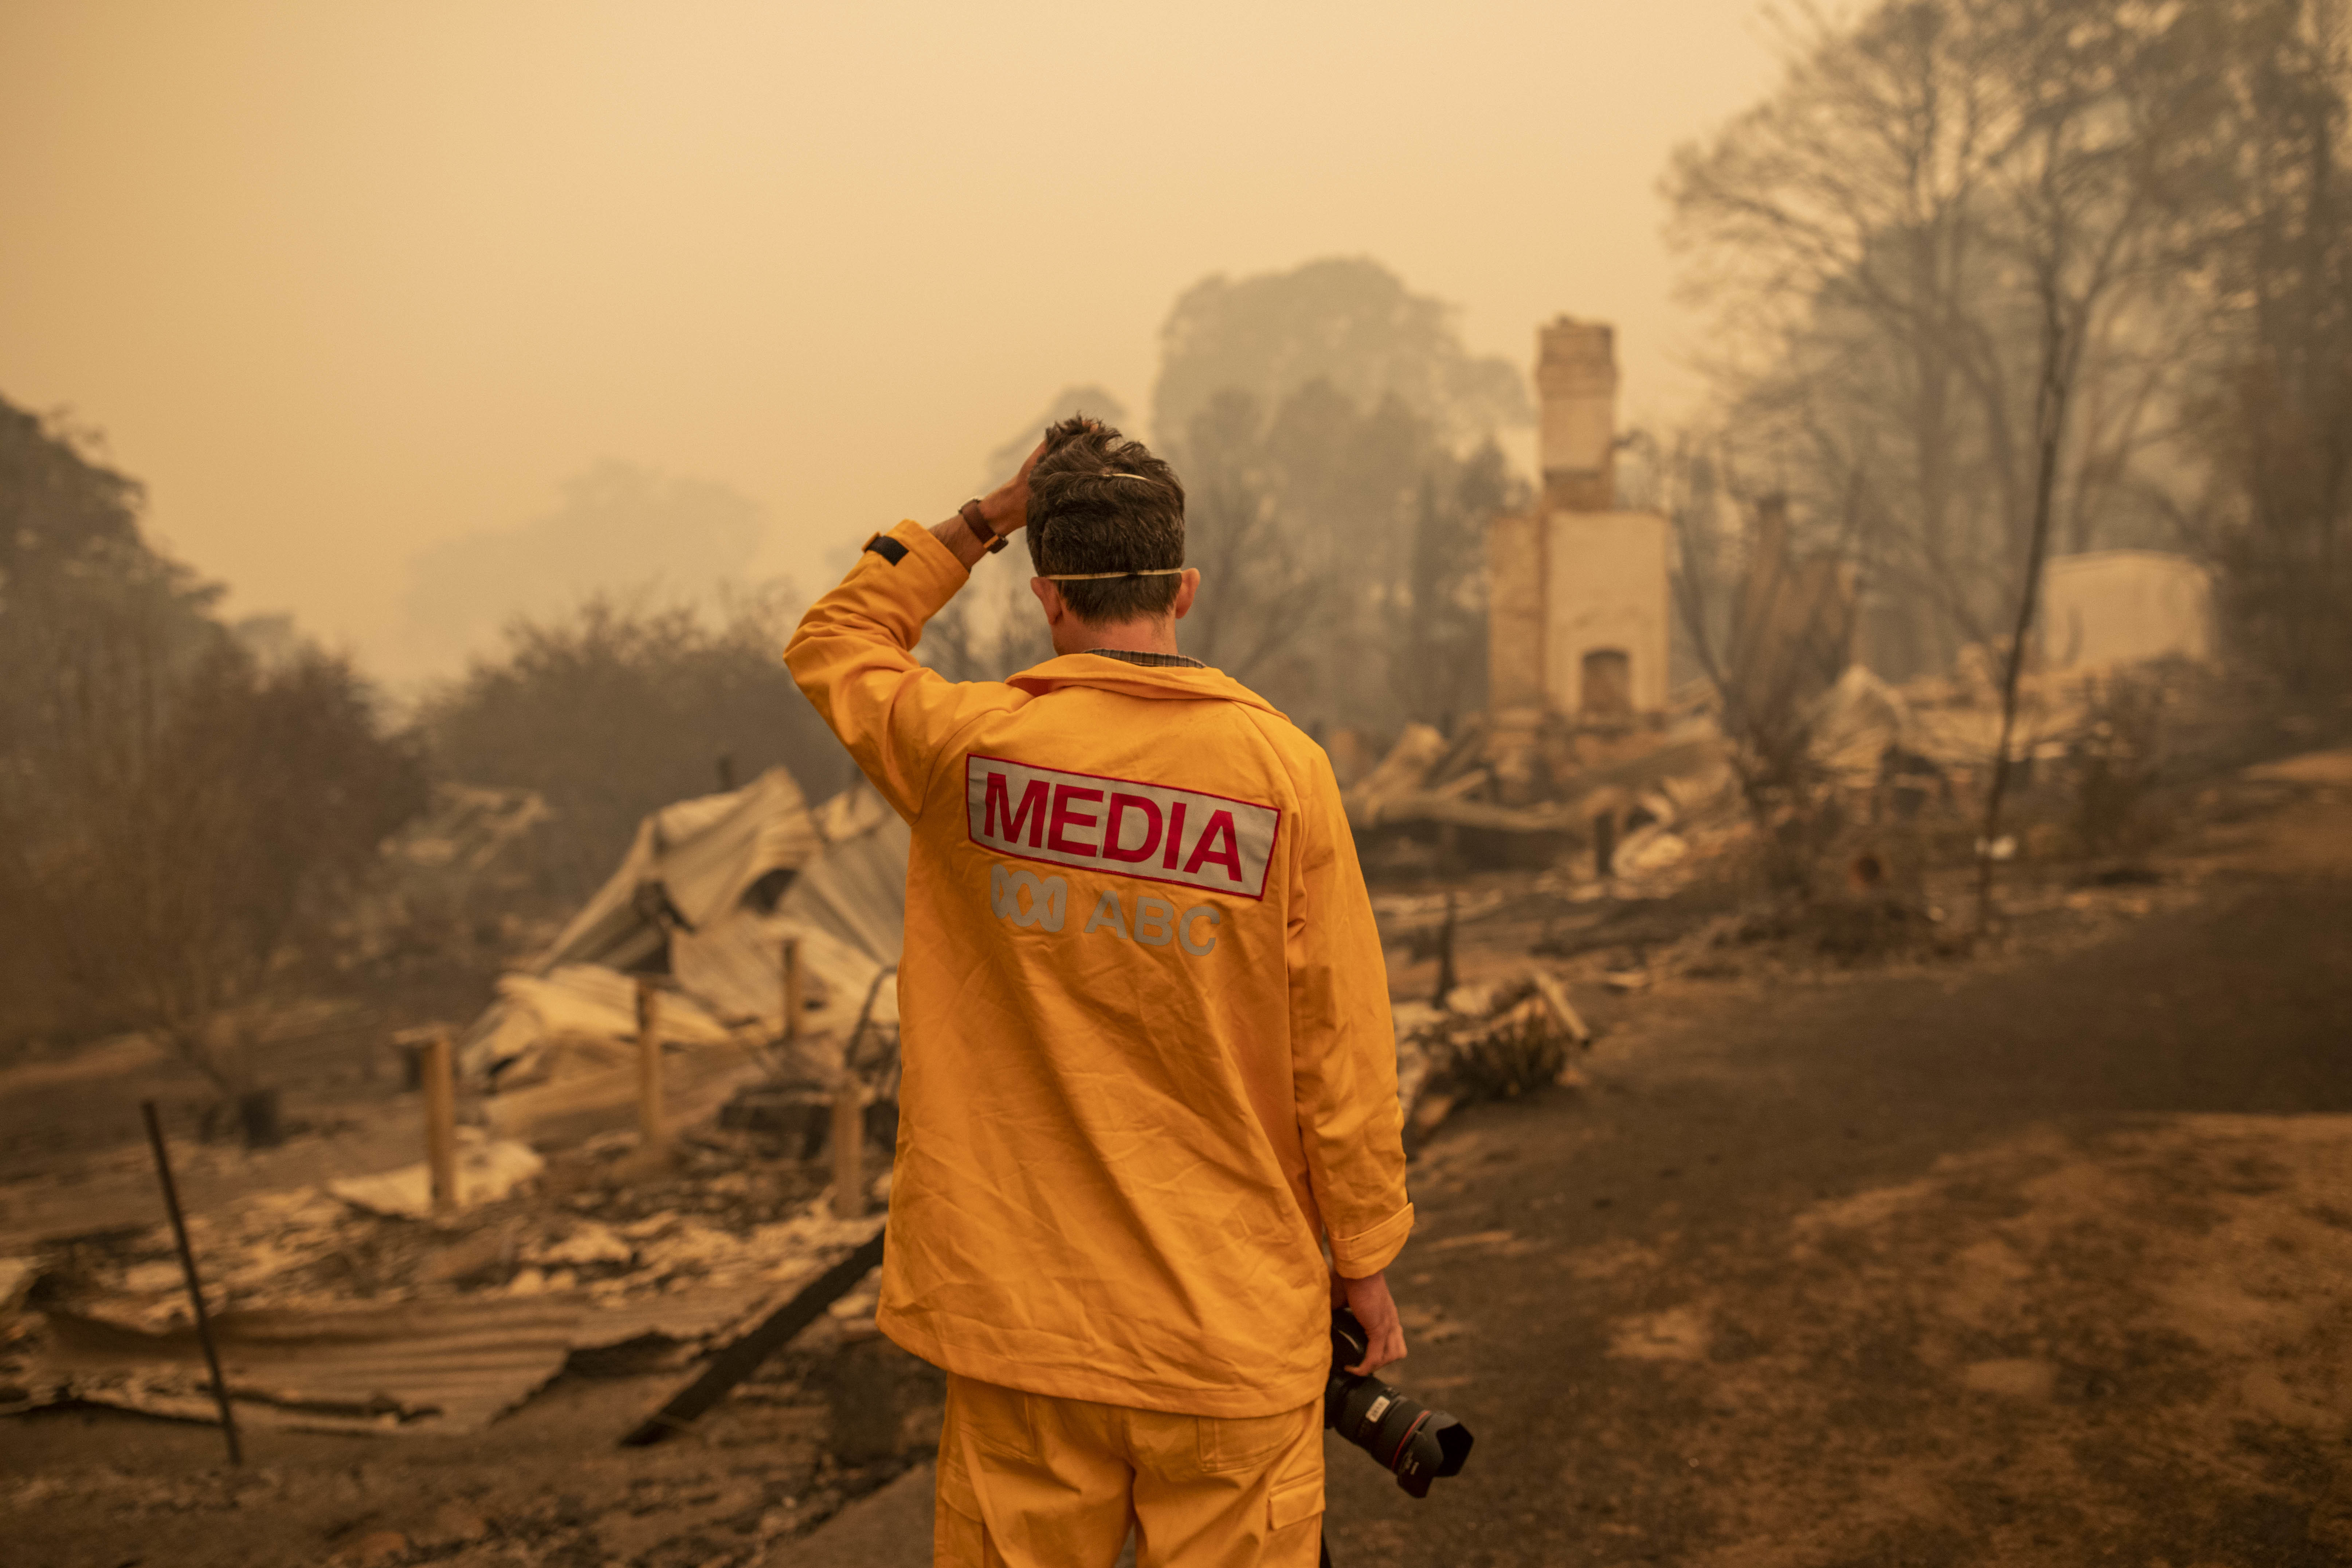 Matt Roberts reacts to seeing his sister's destroyed house in Quaama, NSW, Wednesday, January 1, 2020.  (AAP Image/Sean Davey)